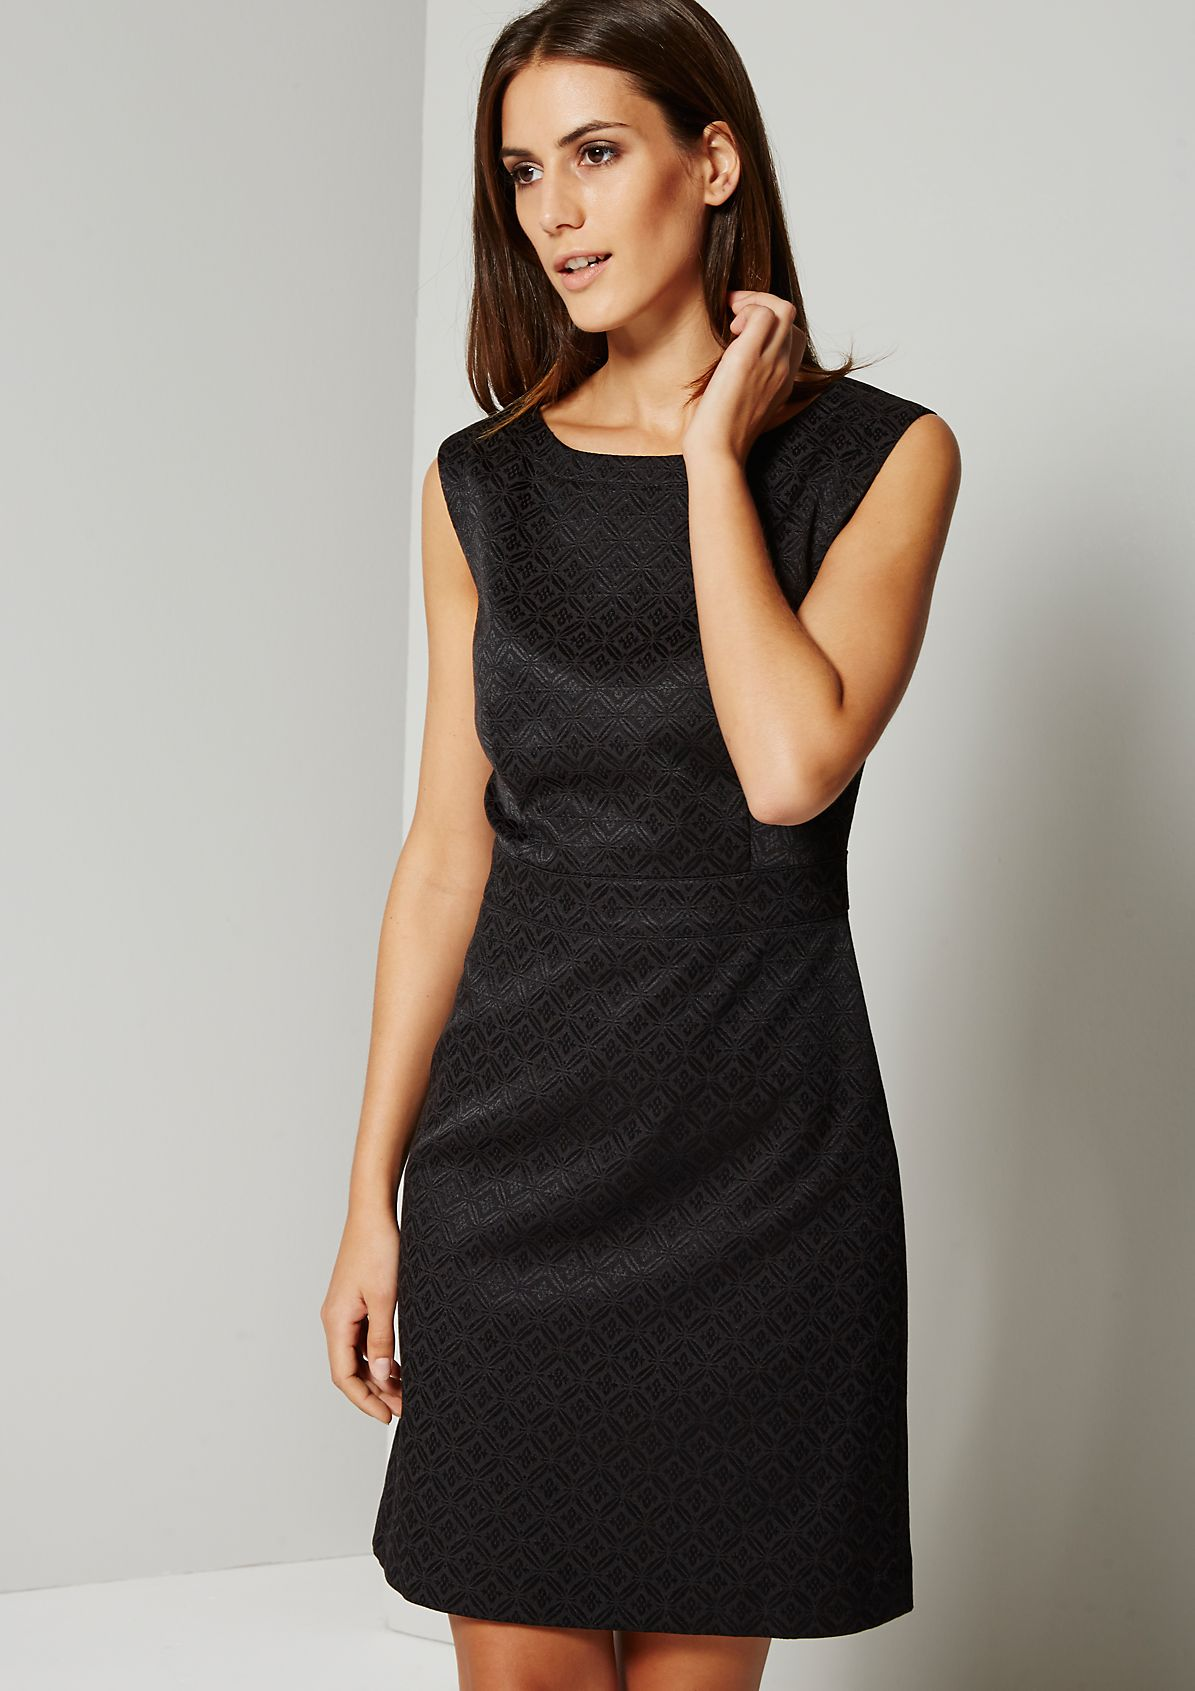 Elegant evening dress with an exciting jacquard pattern from s.Oliver